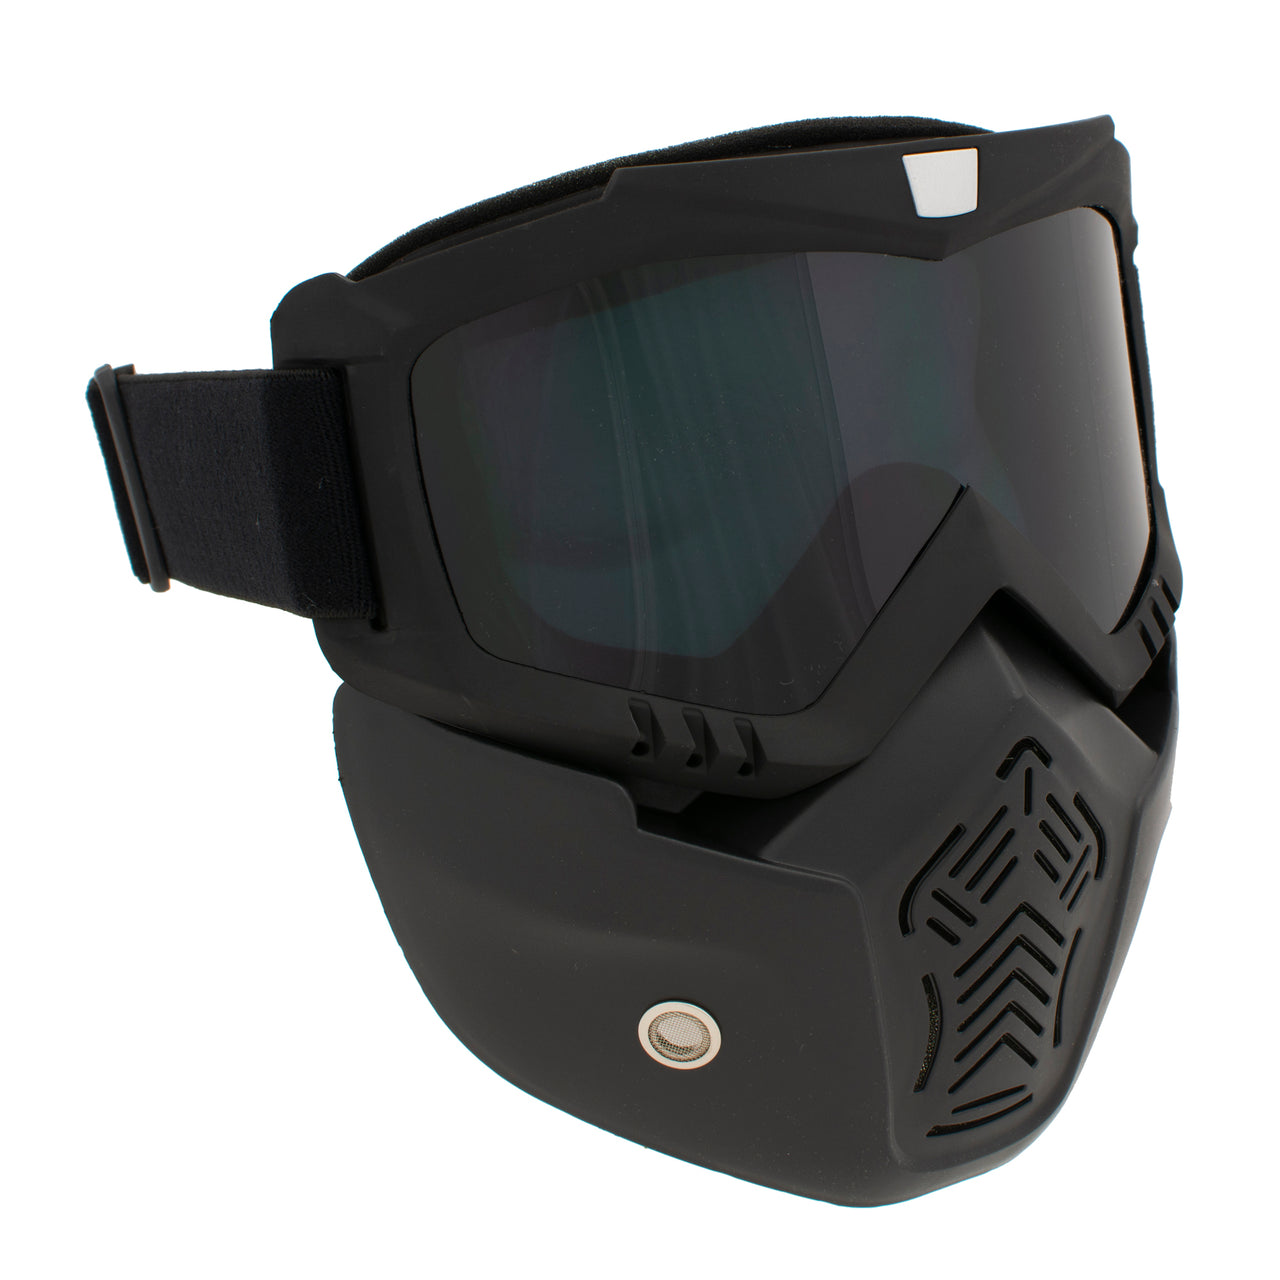 Motorcycle Googles w/ Detachable Mask and Dust Muffle - HighwayLeather